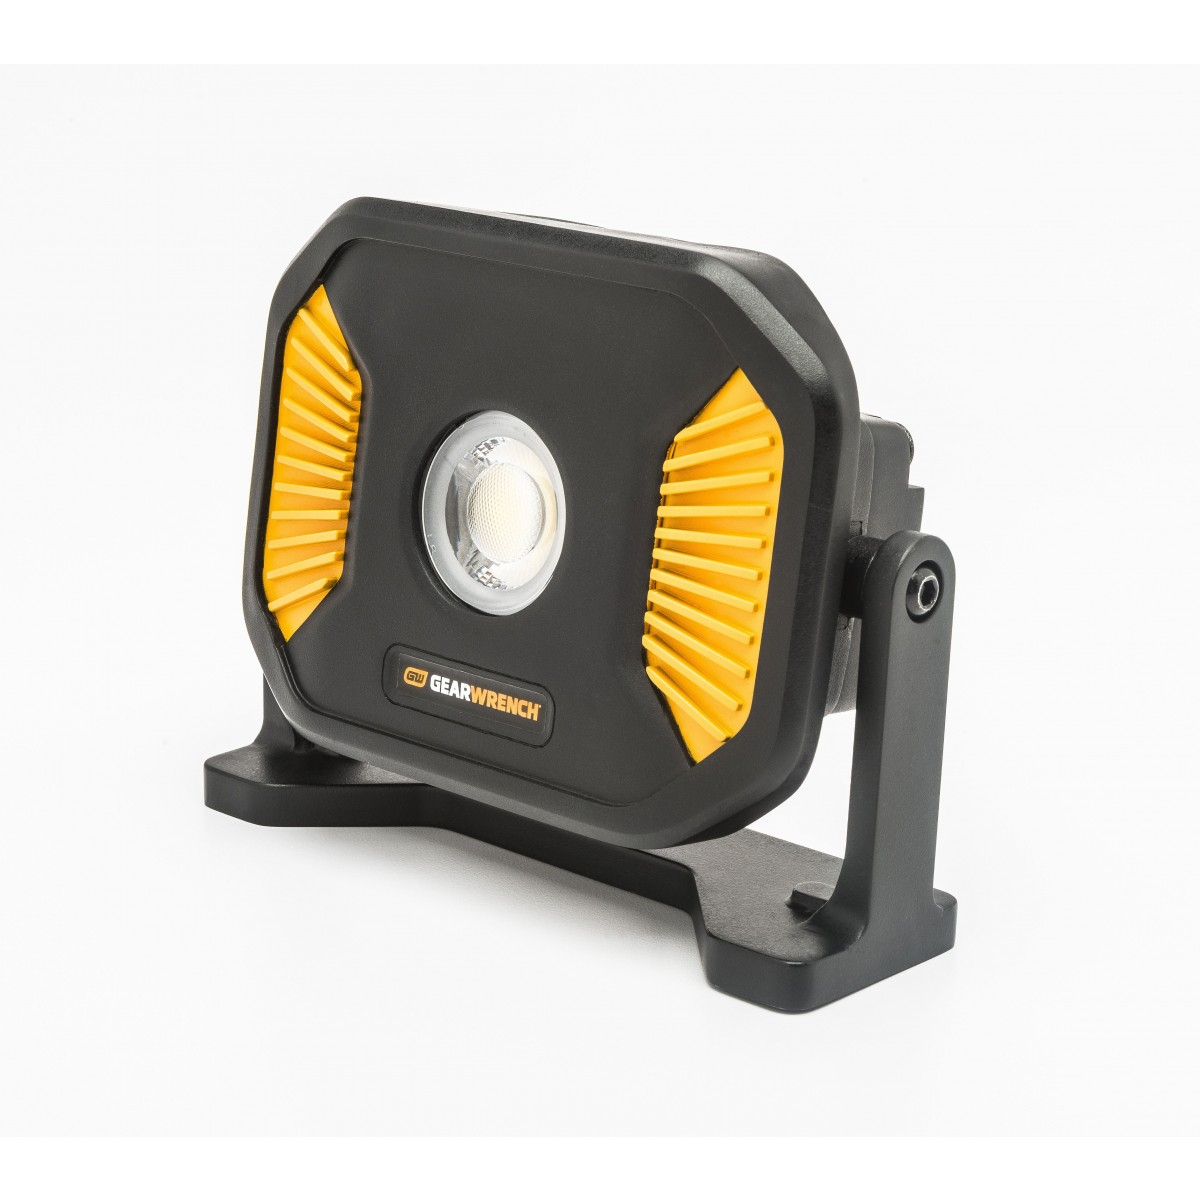 GearWrench®; 83124 Rechargeable Area Light With AC Adapter, LED Lamp